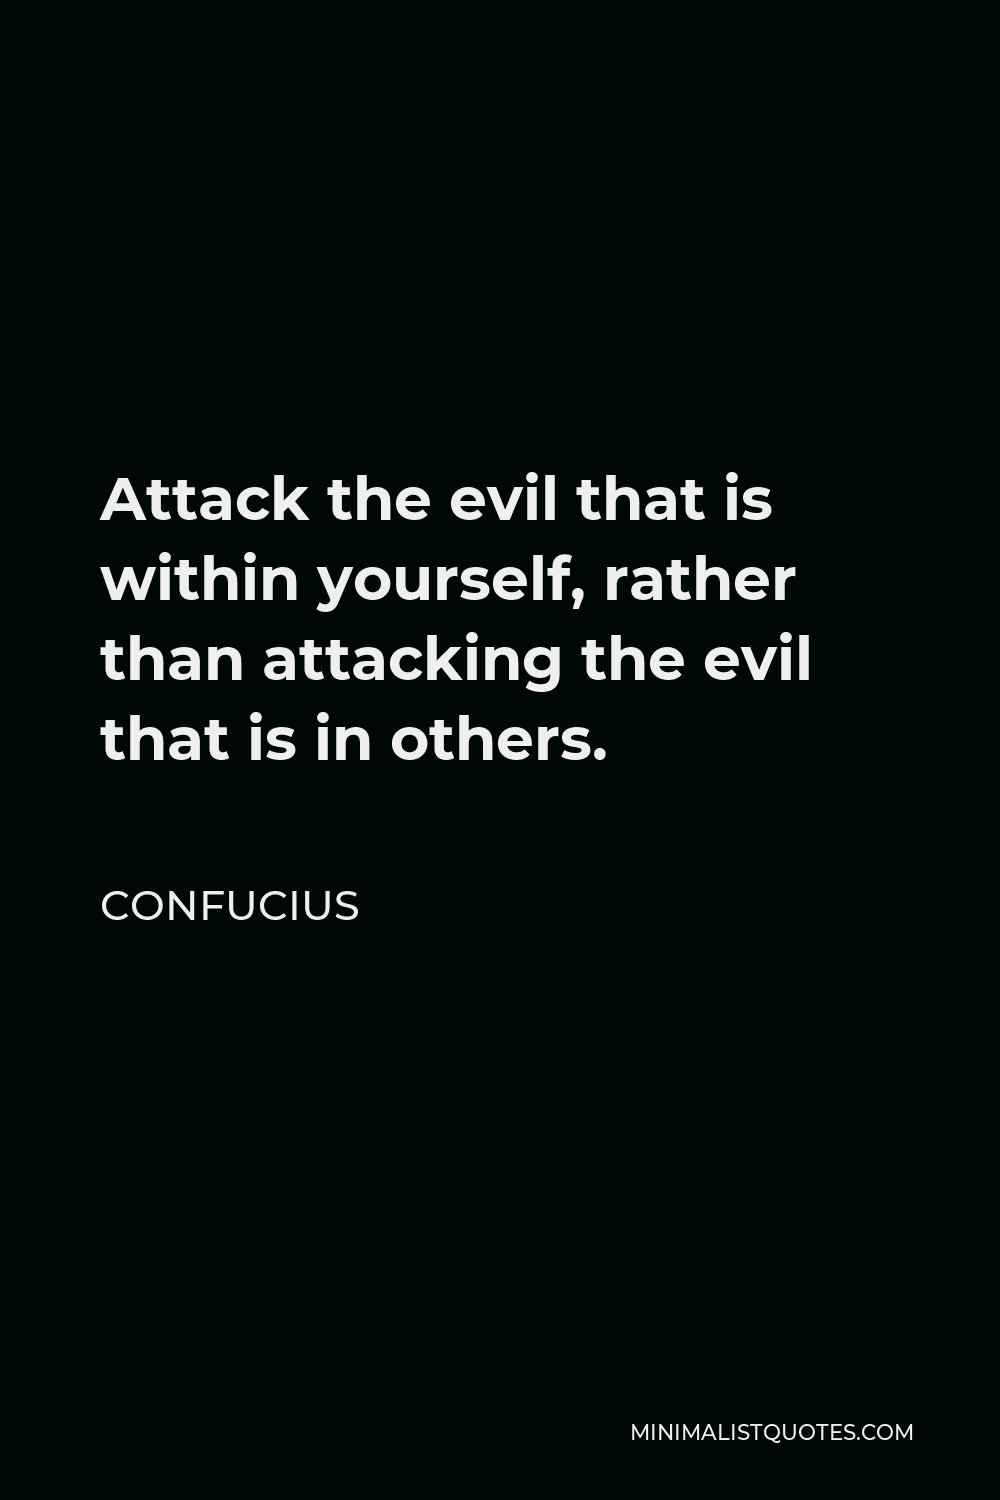 Confucius Quote - Attack the evil that is within yourself, rather than attacking the evil that is in others.